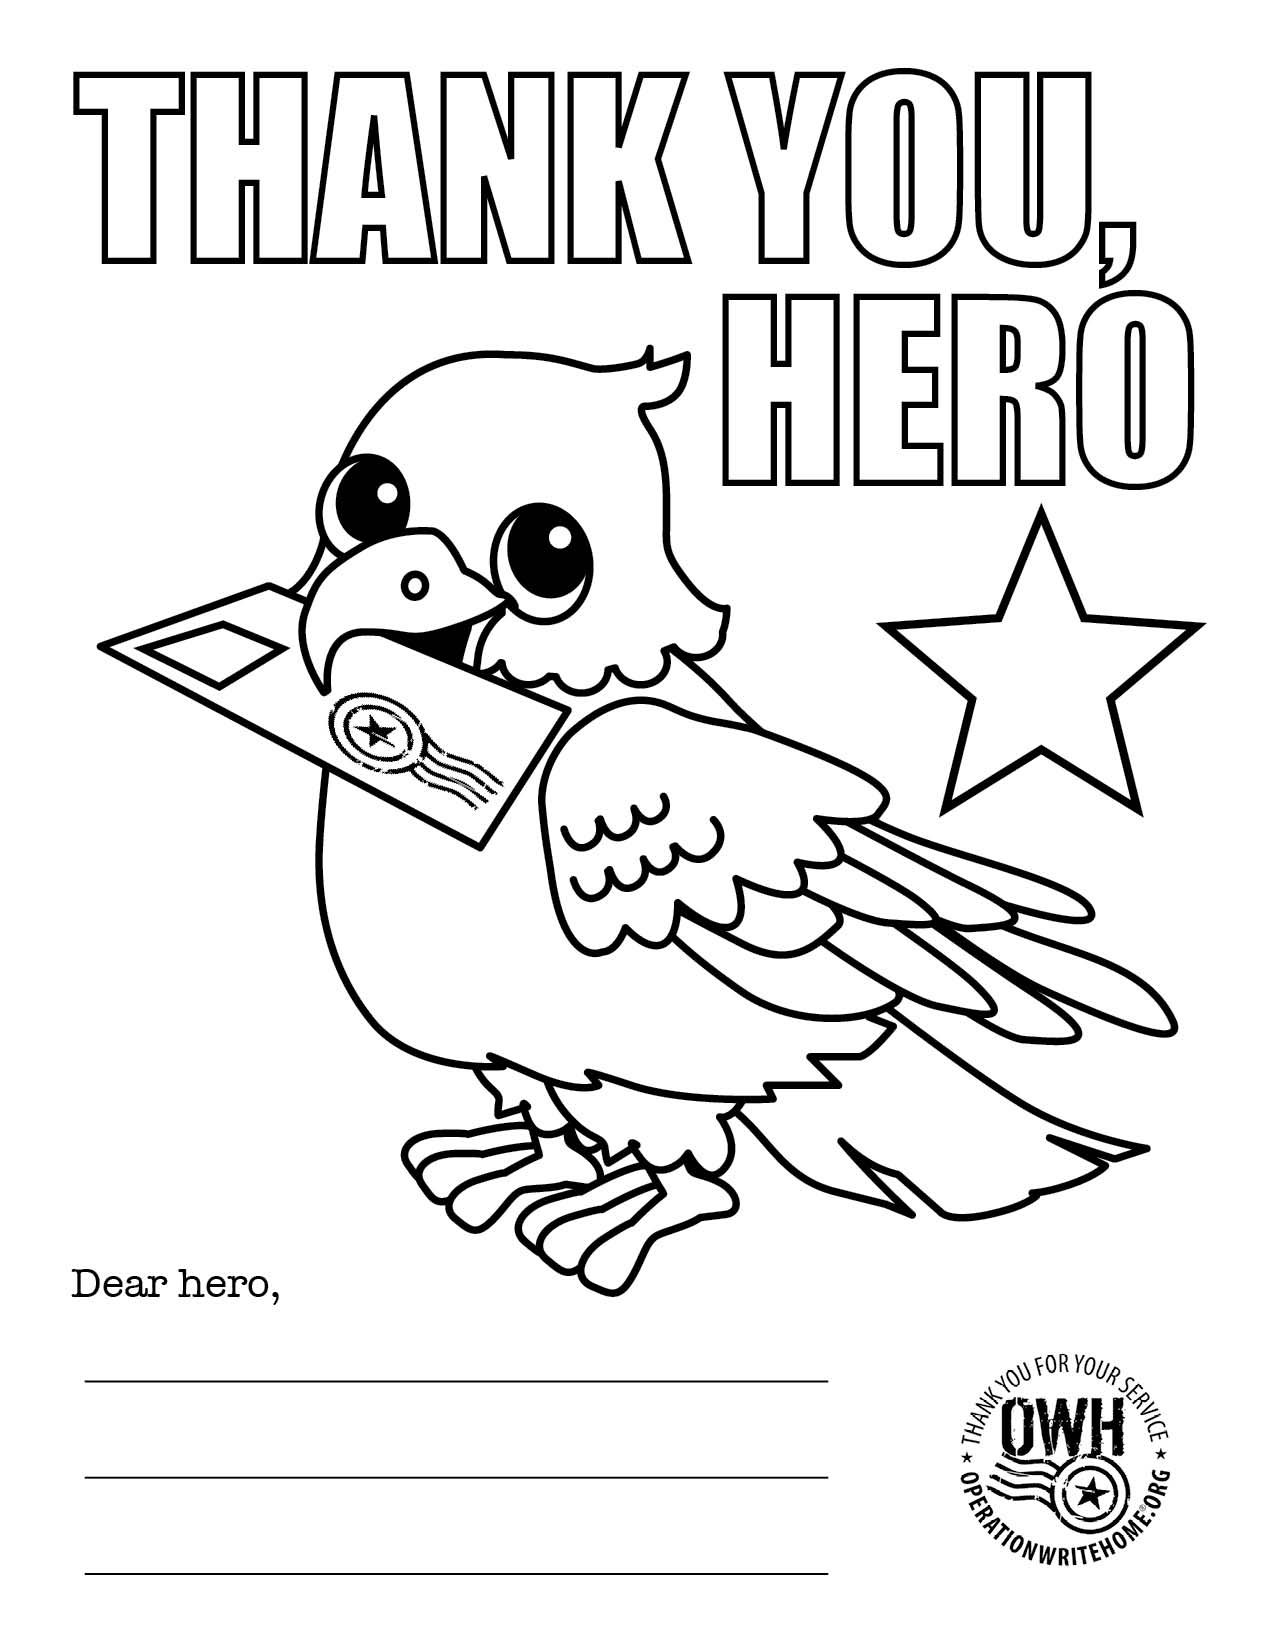 coloring pages for hero mail operation write home - Patriotic Military Coloring Pages